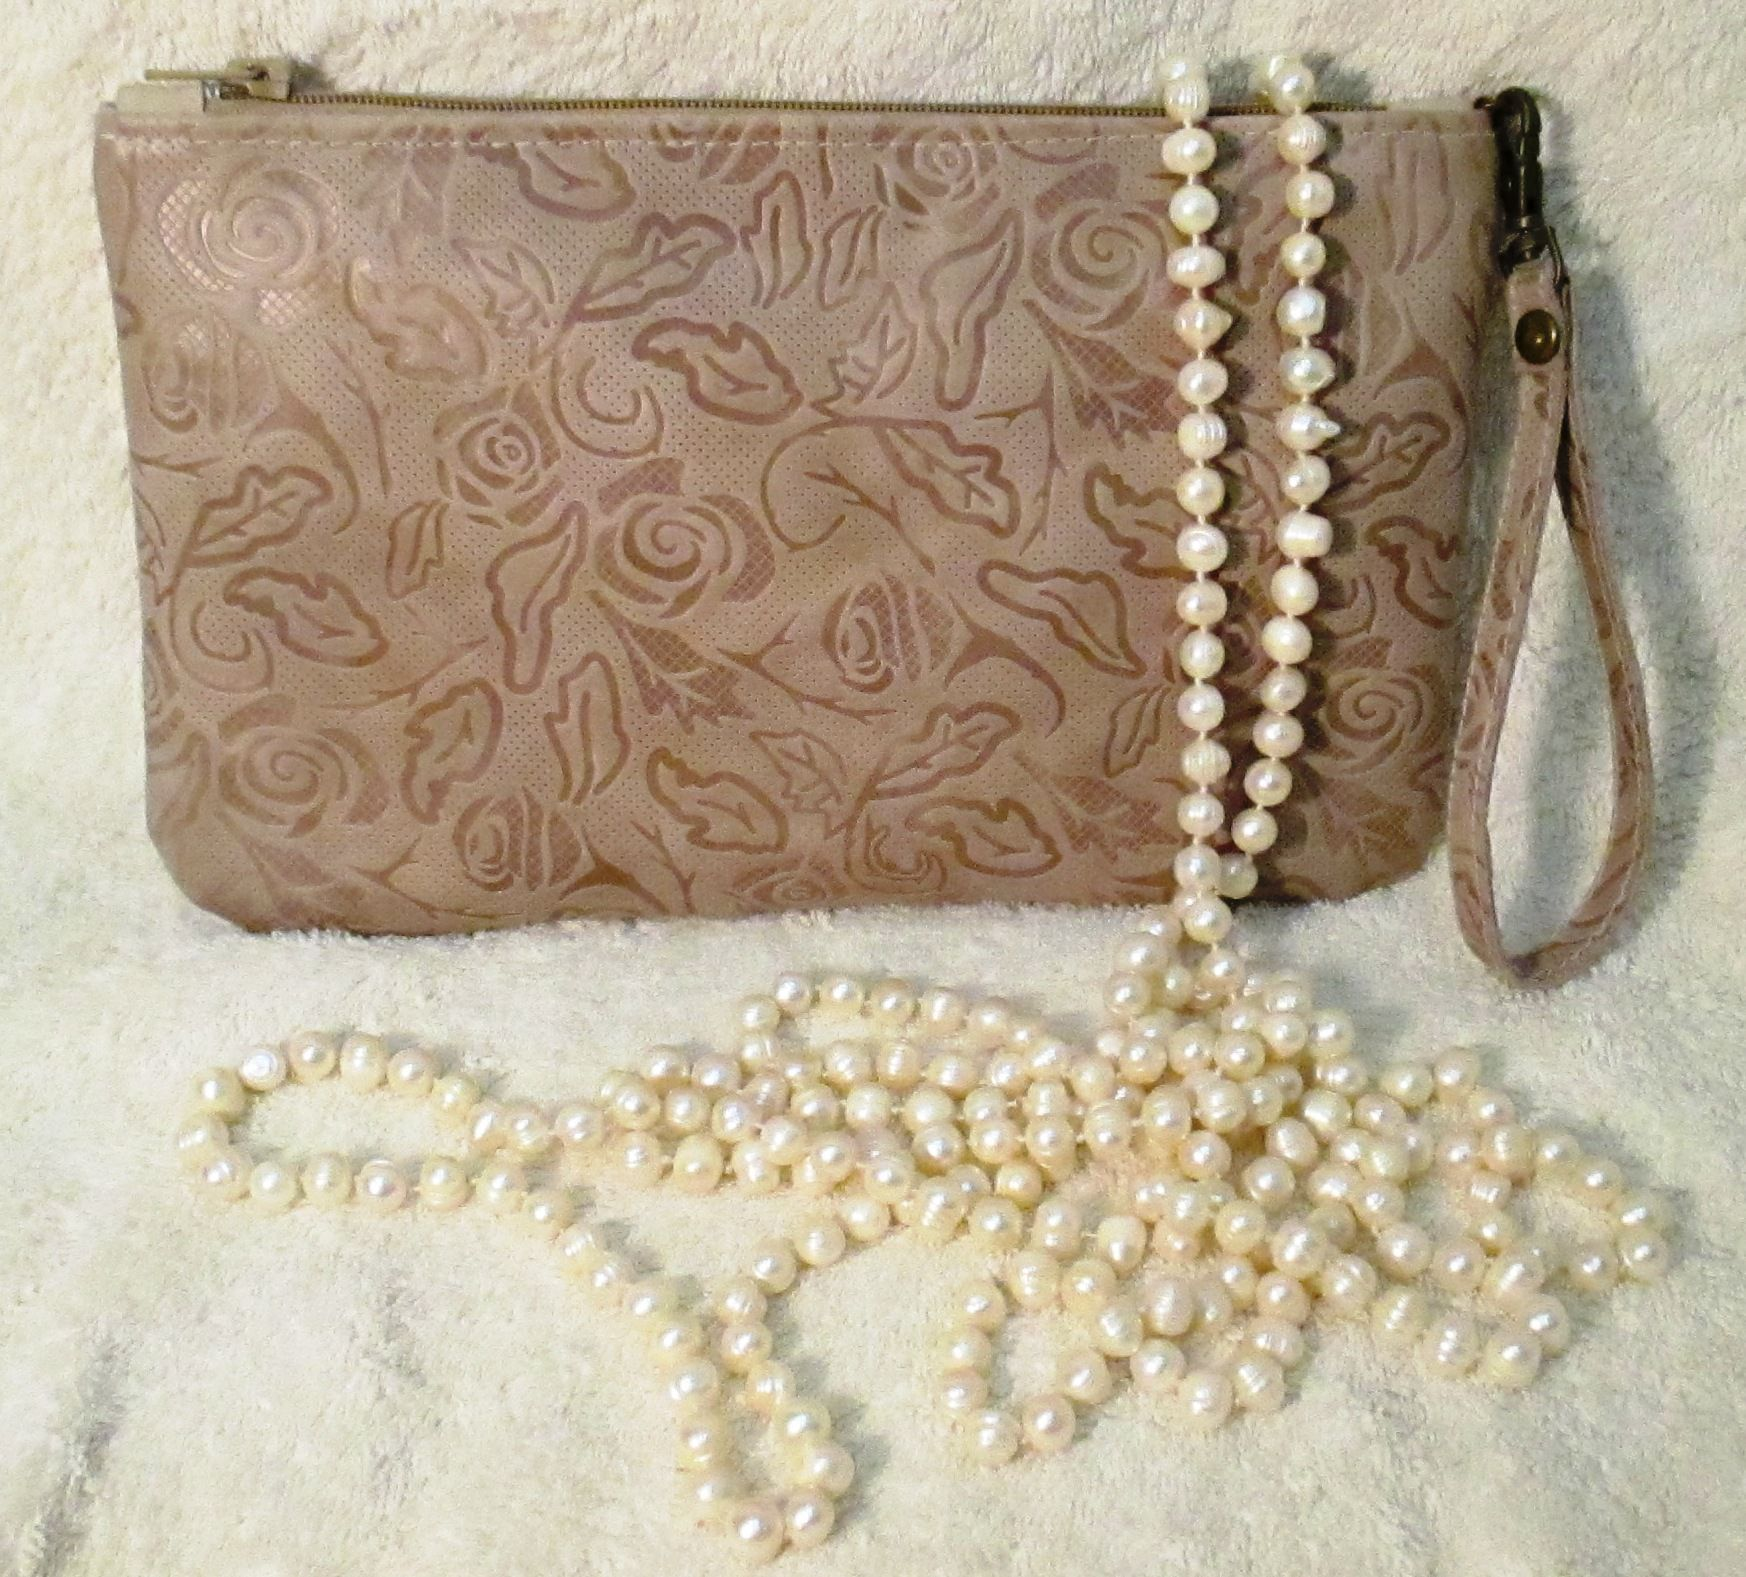 leather accessories bag beige clutch floral